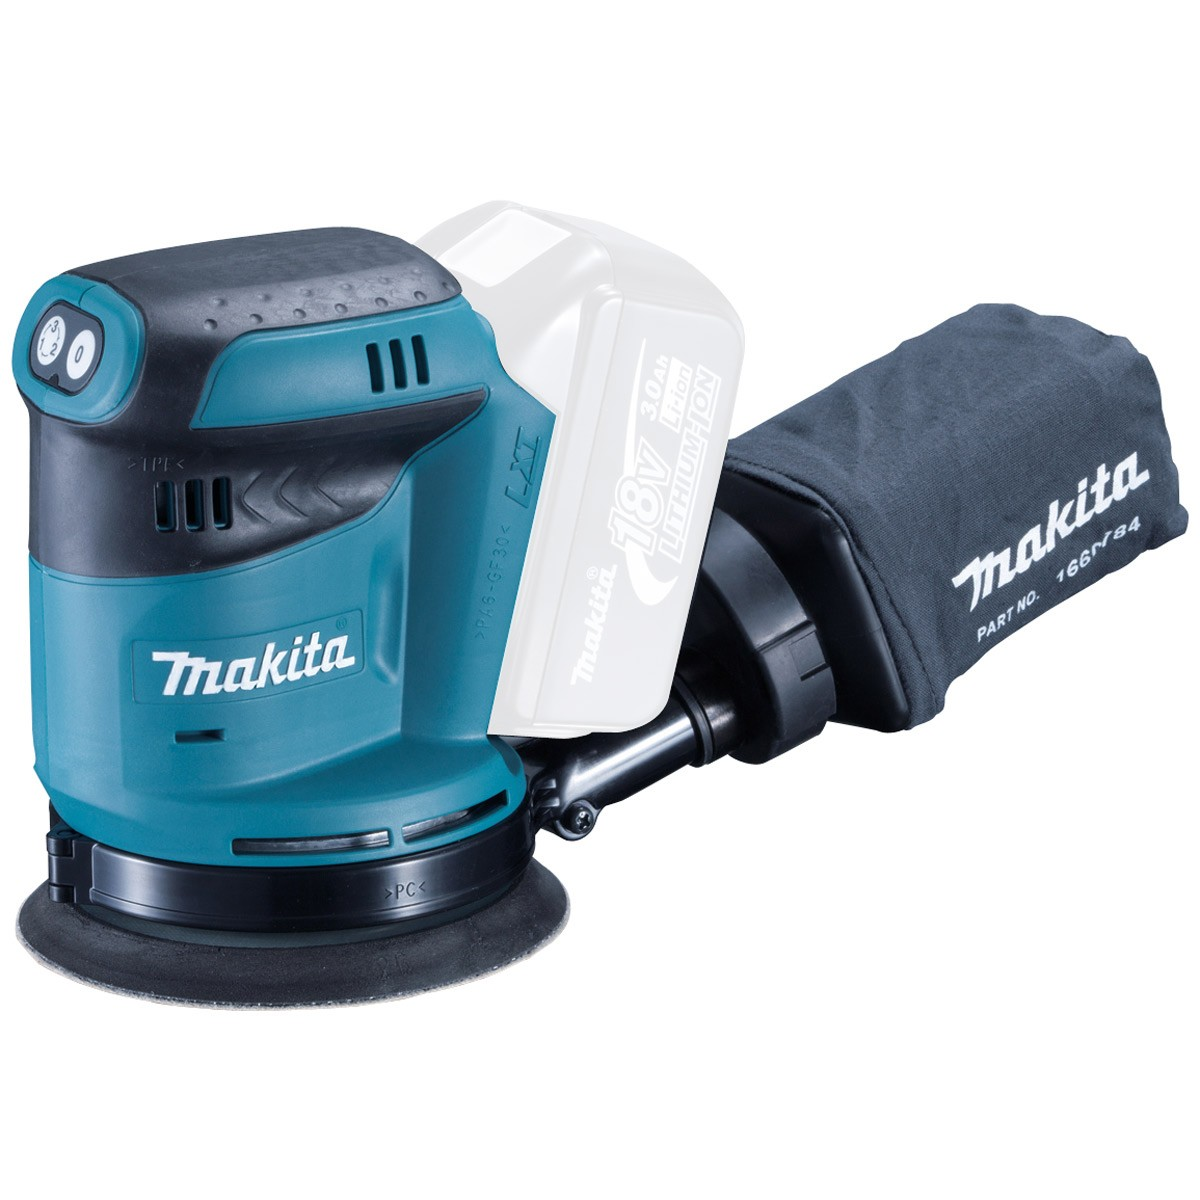 Makita DBO180Z LXT 18v 125mm Random Orbit Sander Body Only